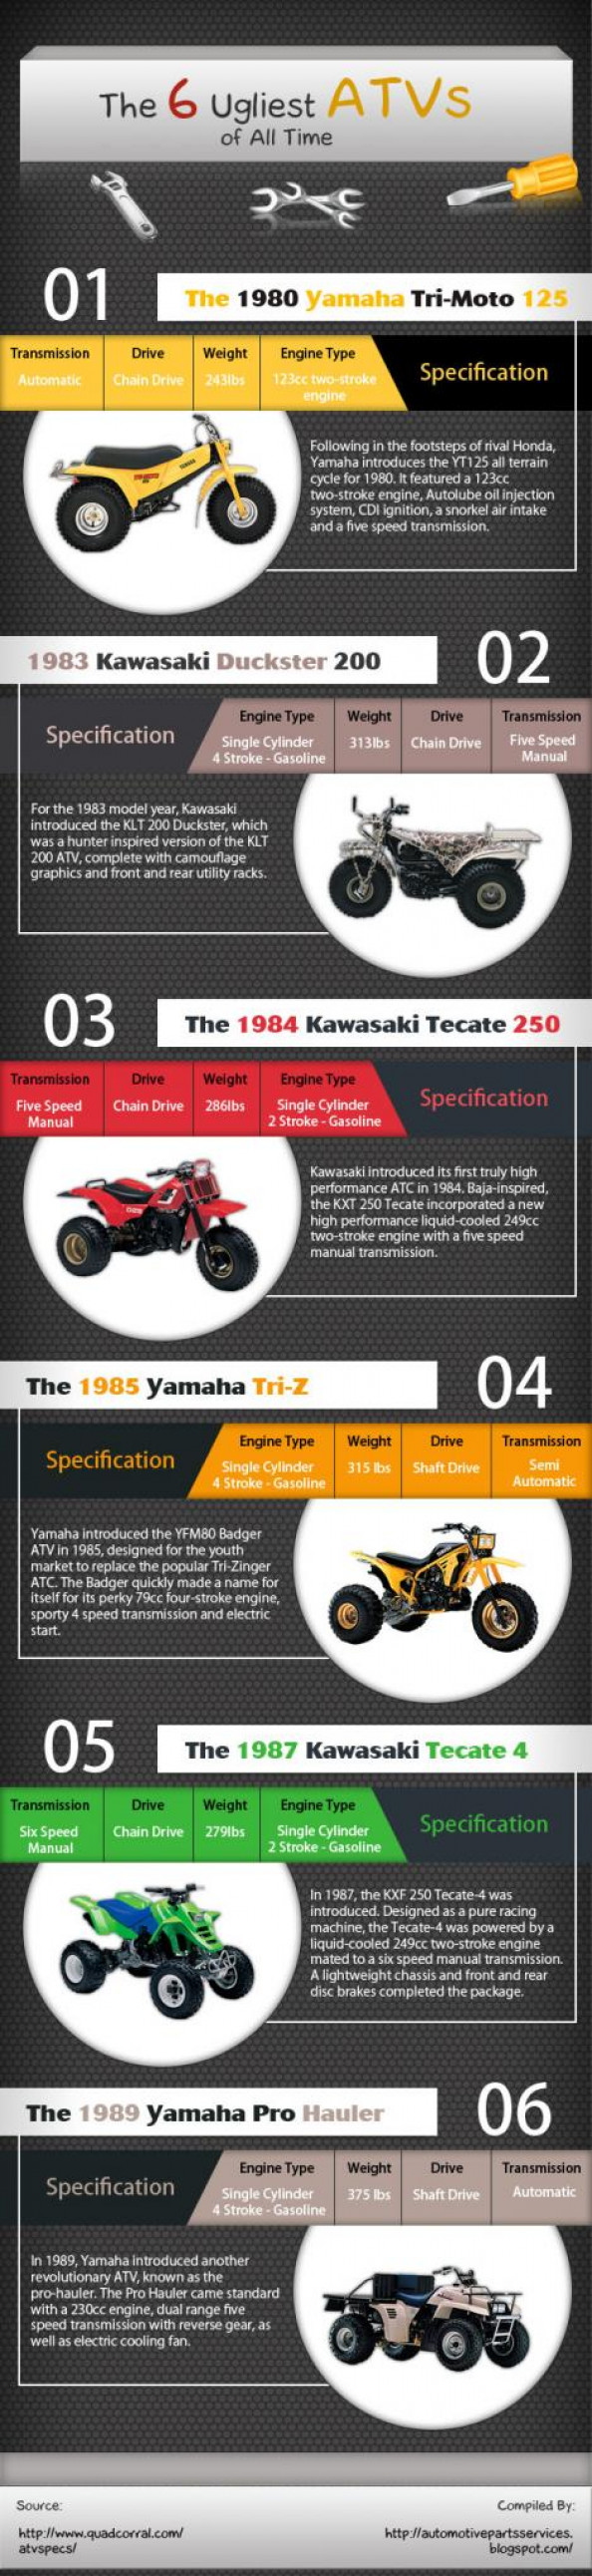 The 6 ugliest atv's of all times Infographic